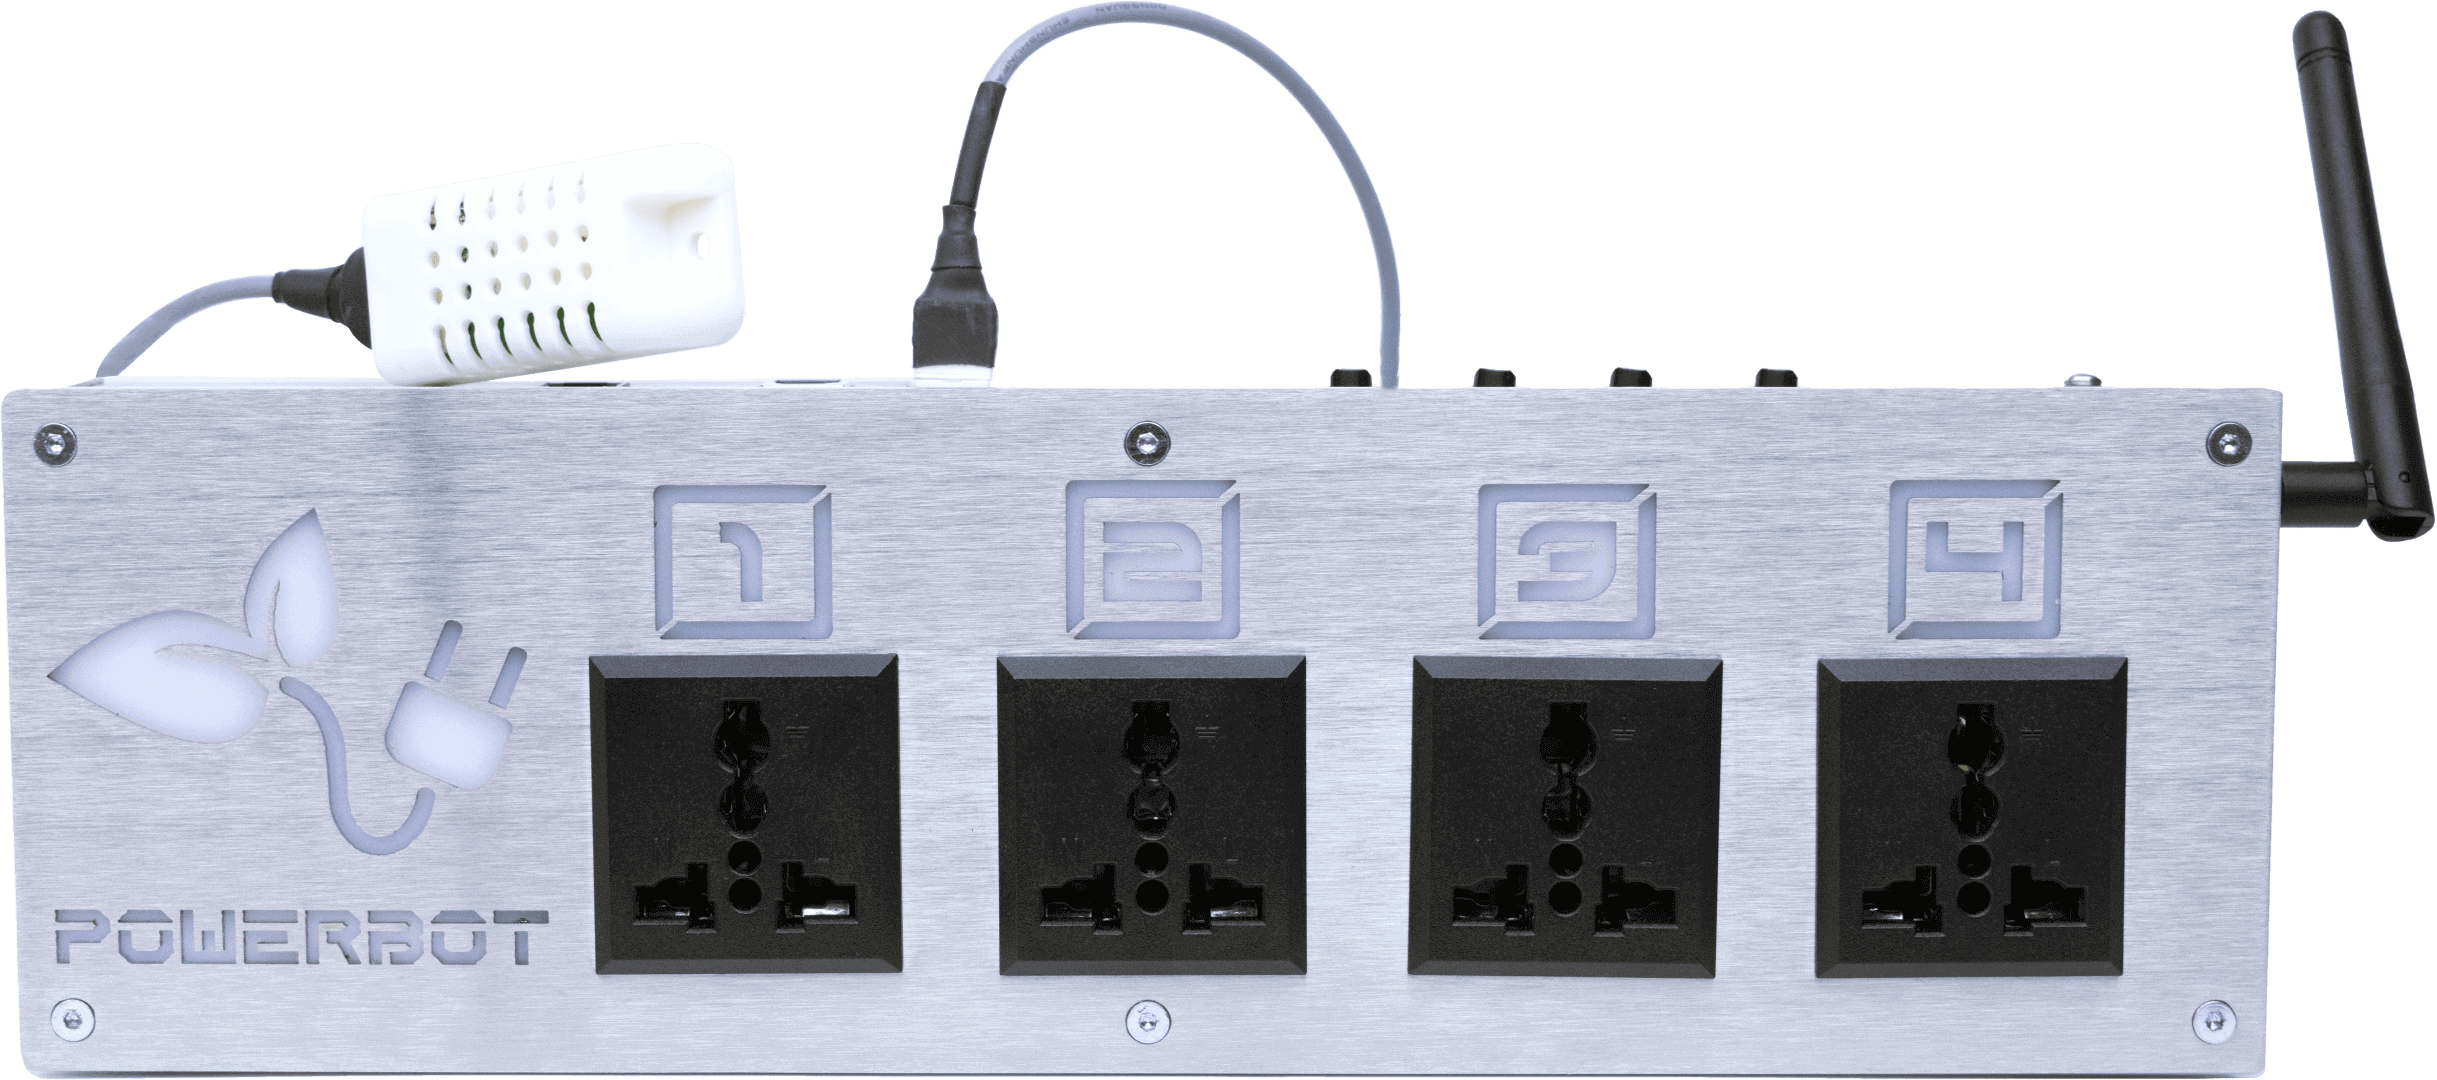 PowerBot, the power module from GroLab grow controller system.